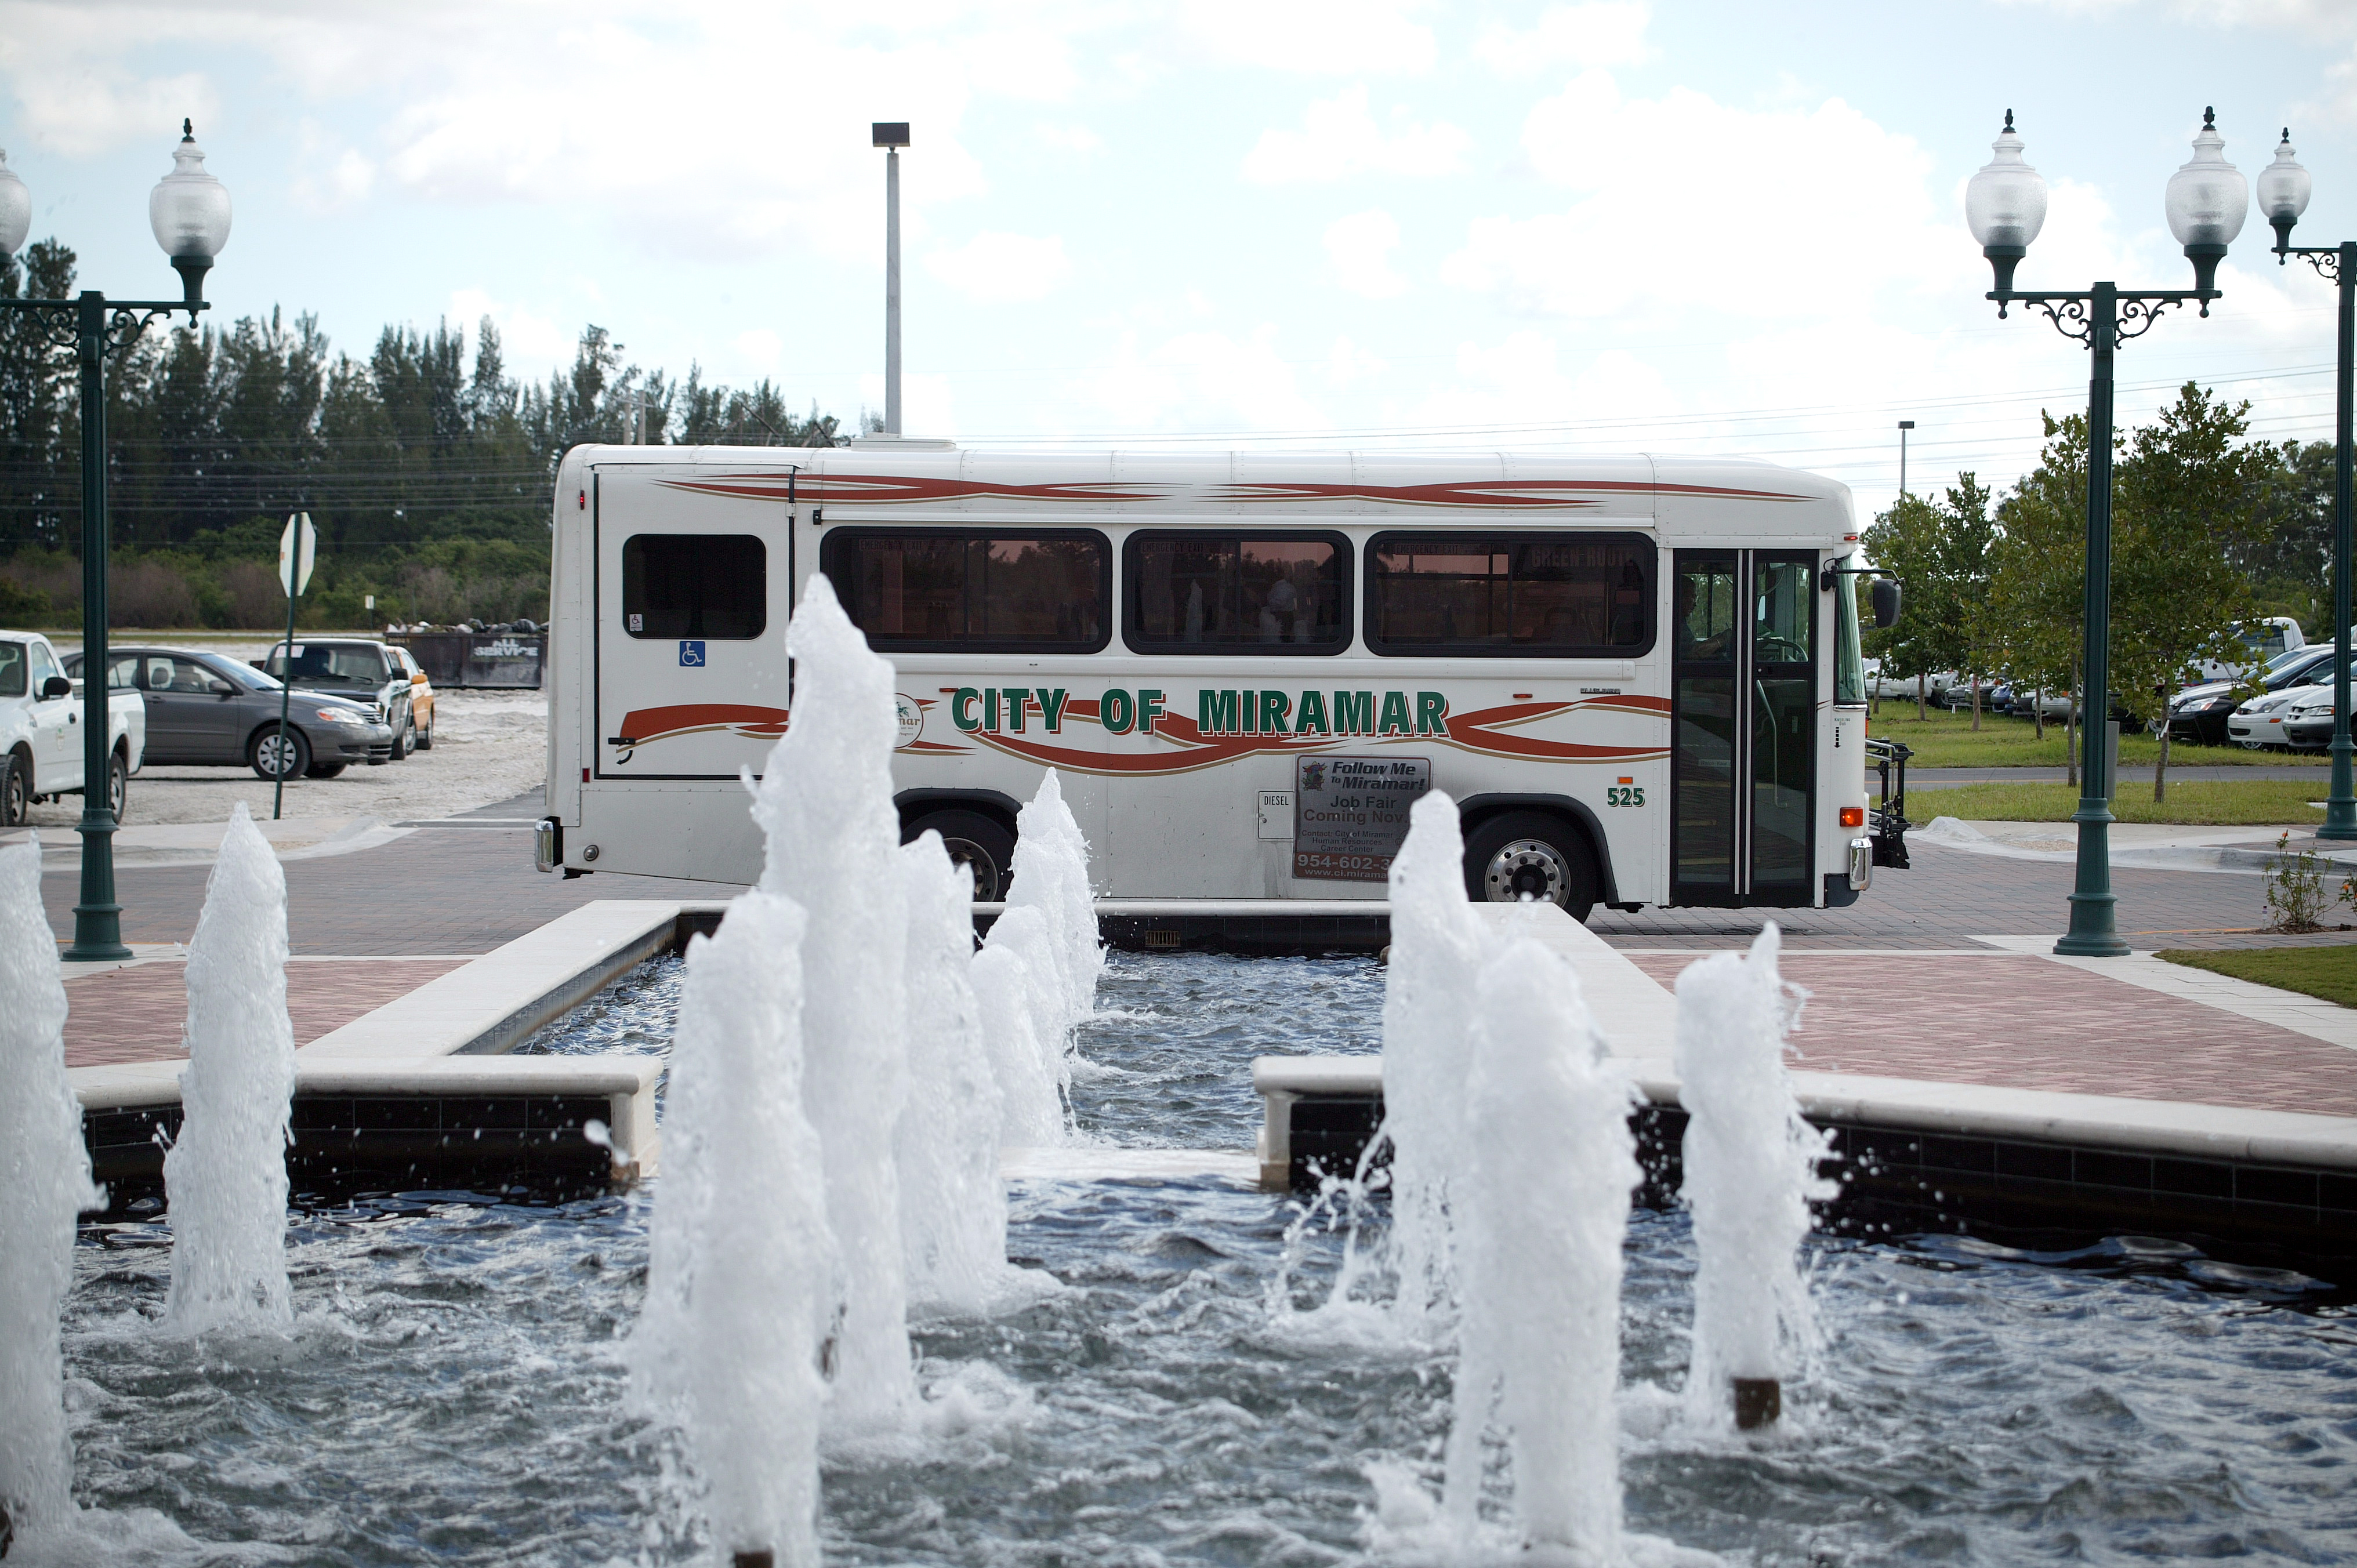 Public transportation bus with City of Miramar printed on the side behind fountains